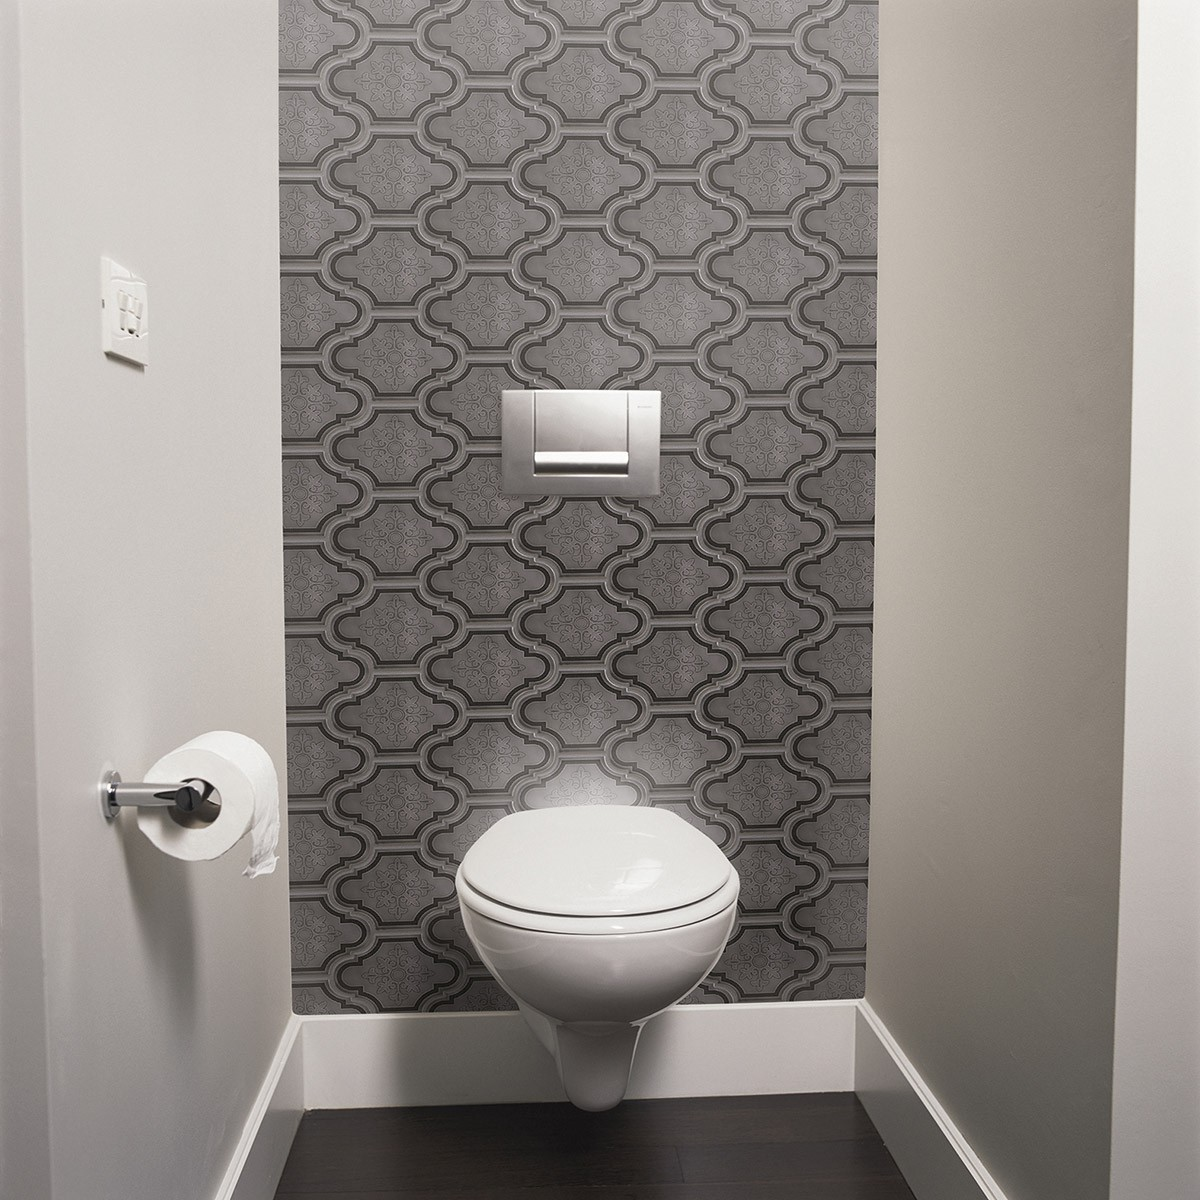 Carrelage metro toilette free carrelage metro leroy for Carrelage wc gris